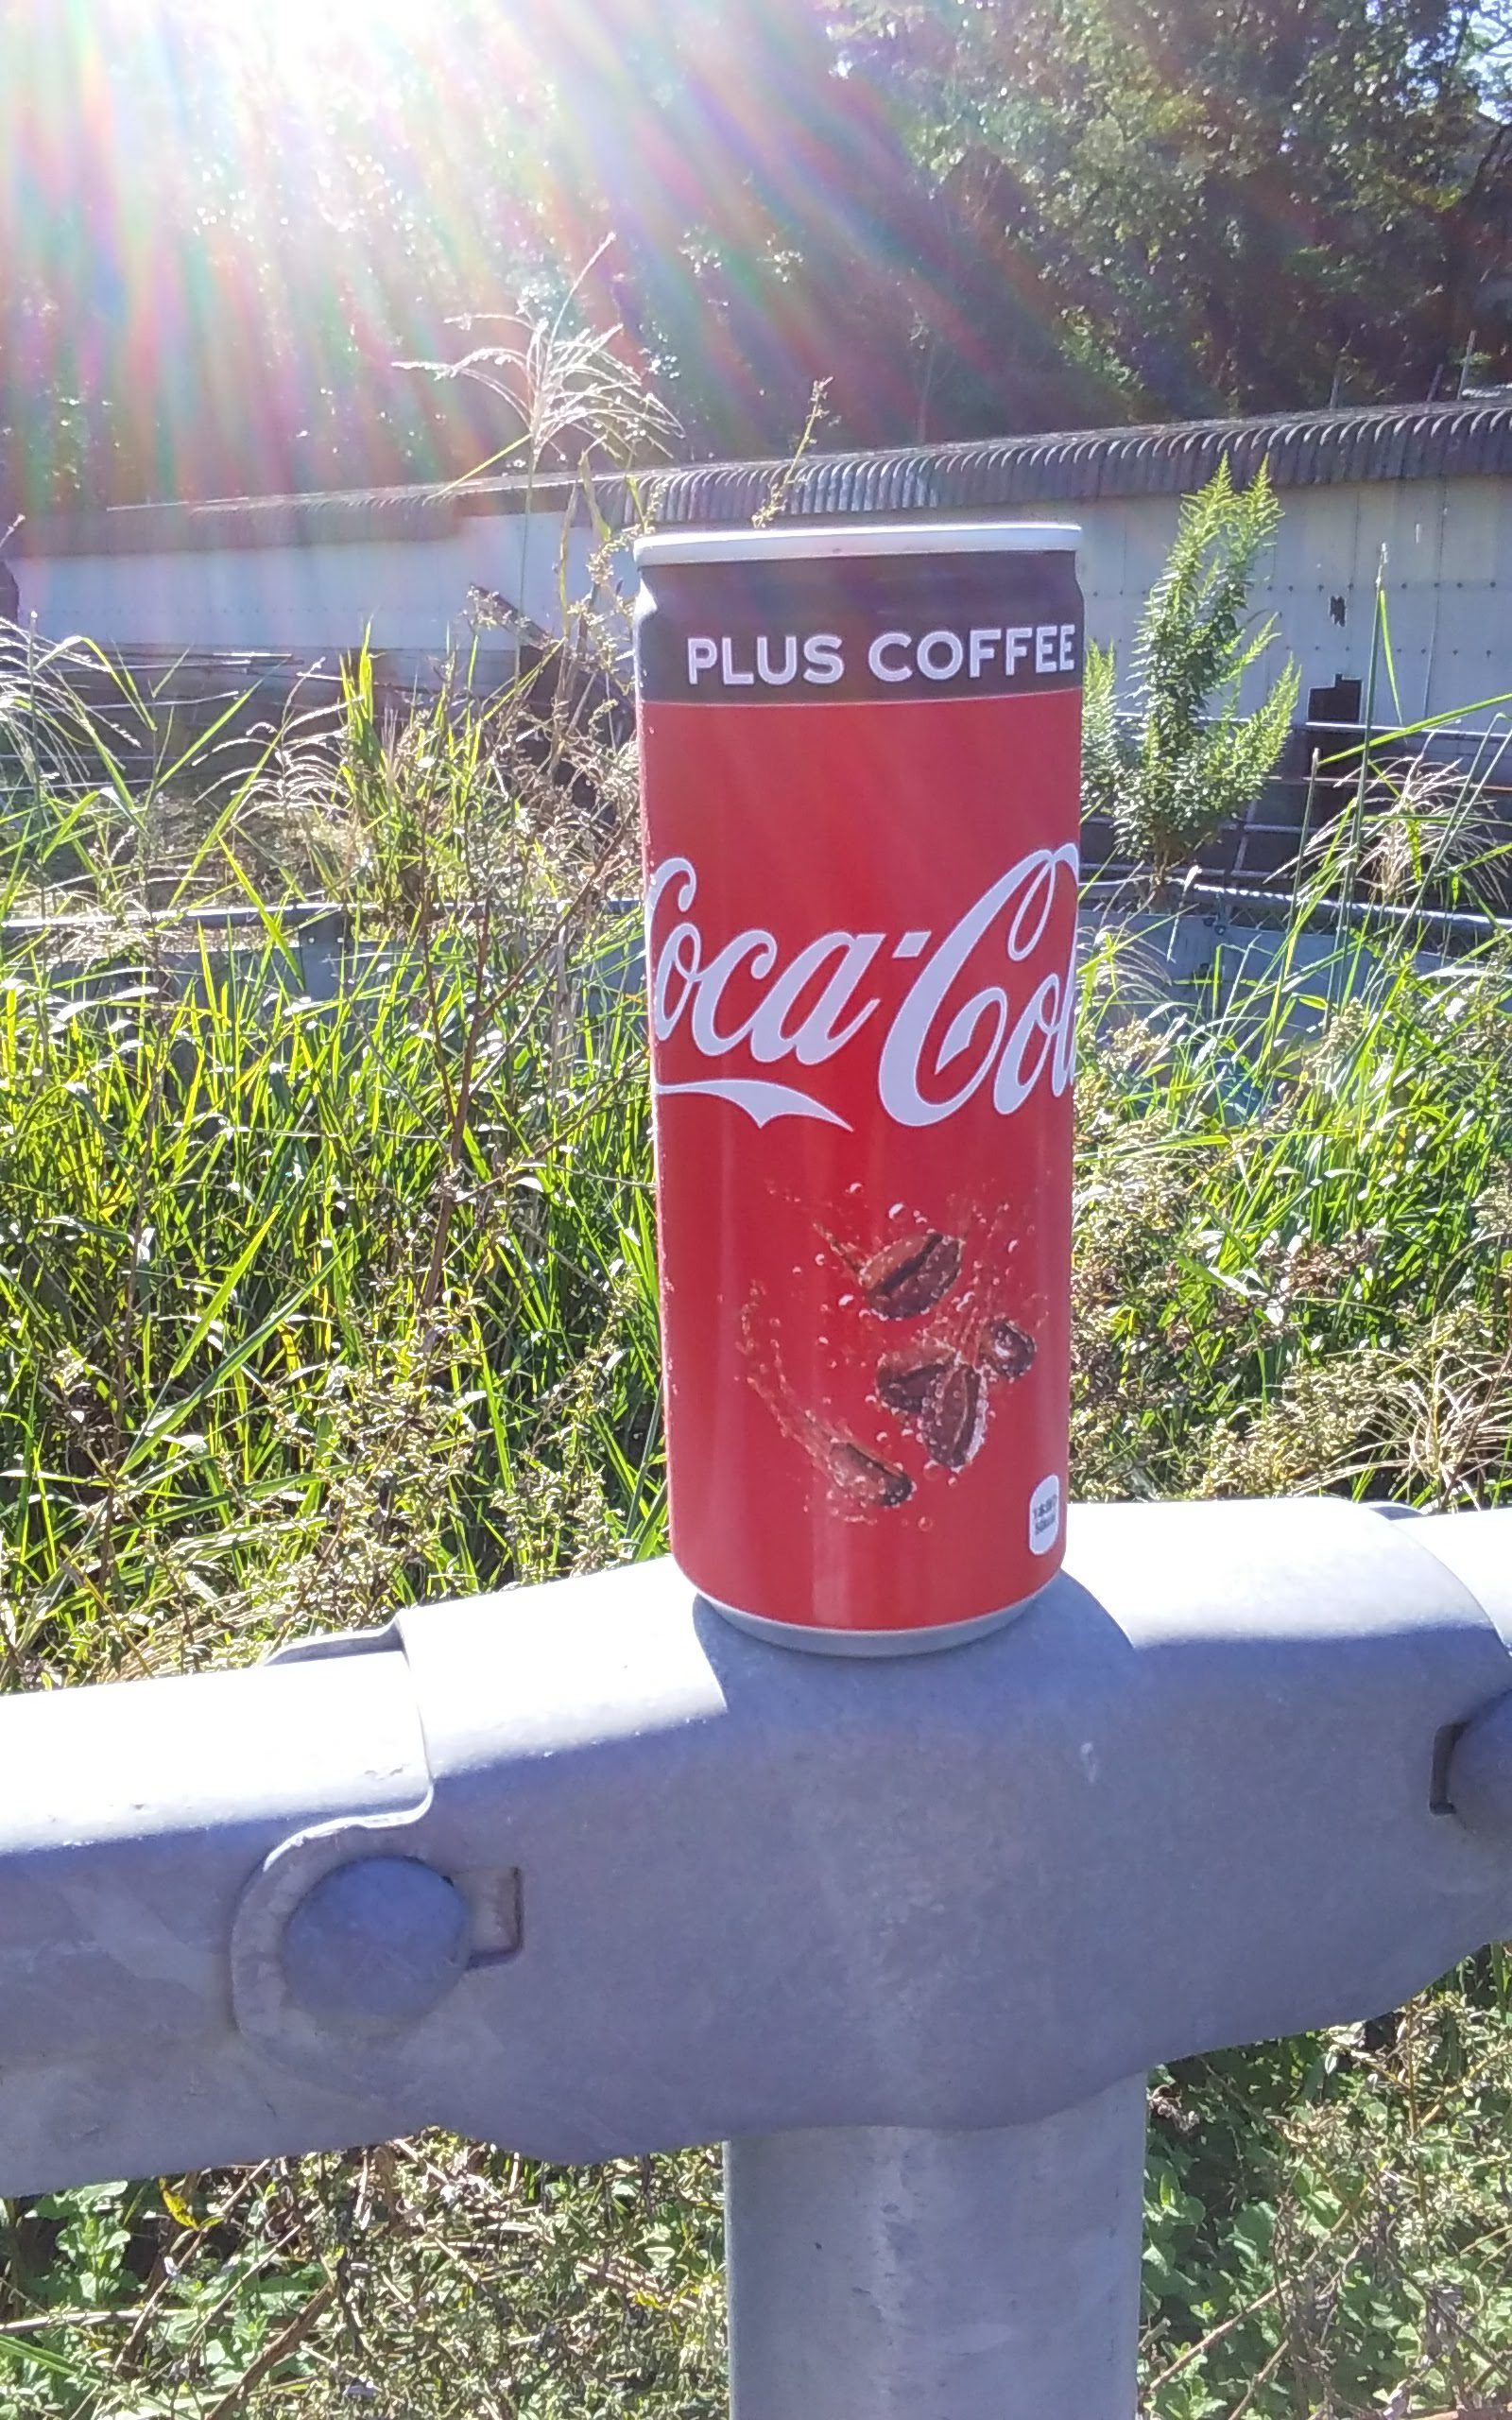 cocacola_plus_coffe_03